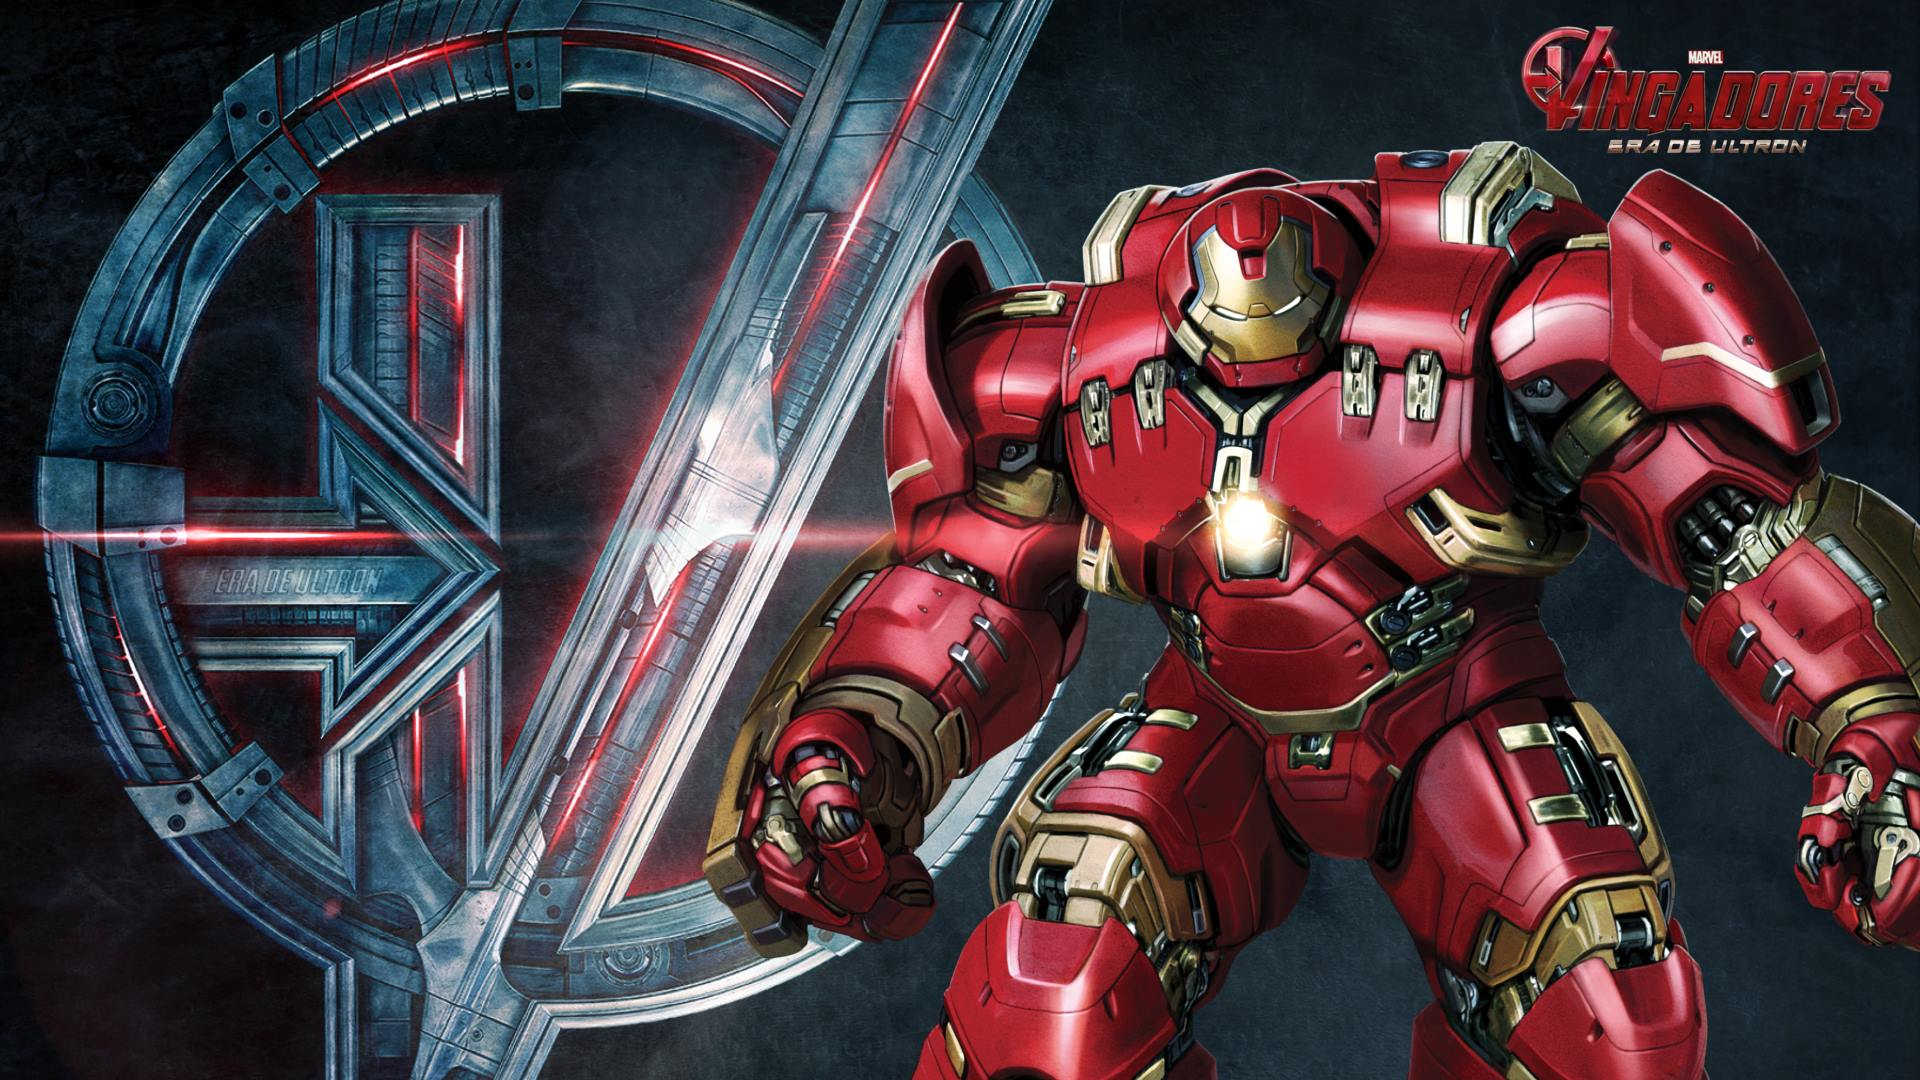 Avengers age of ultron full hd wallpaper and background image movie avengers age of ultron iron man wallpaper voltagebd Image collections